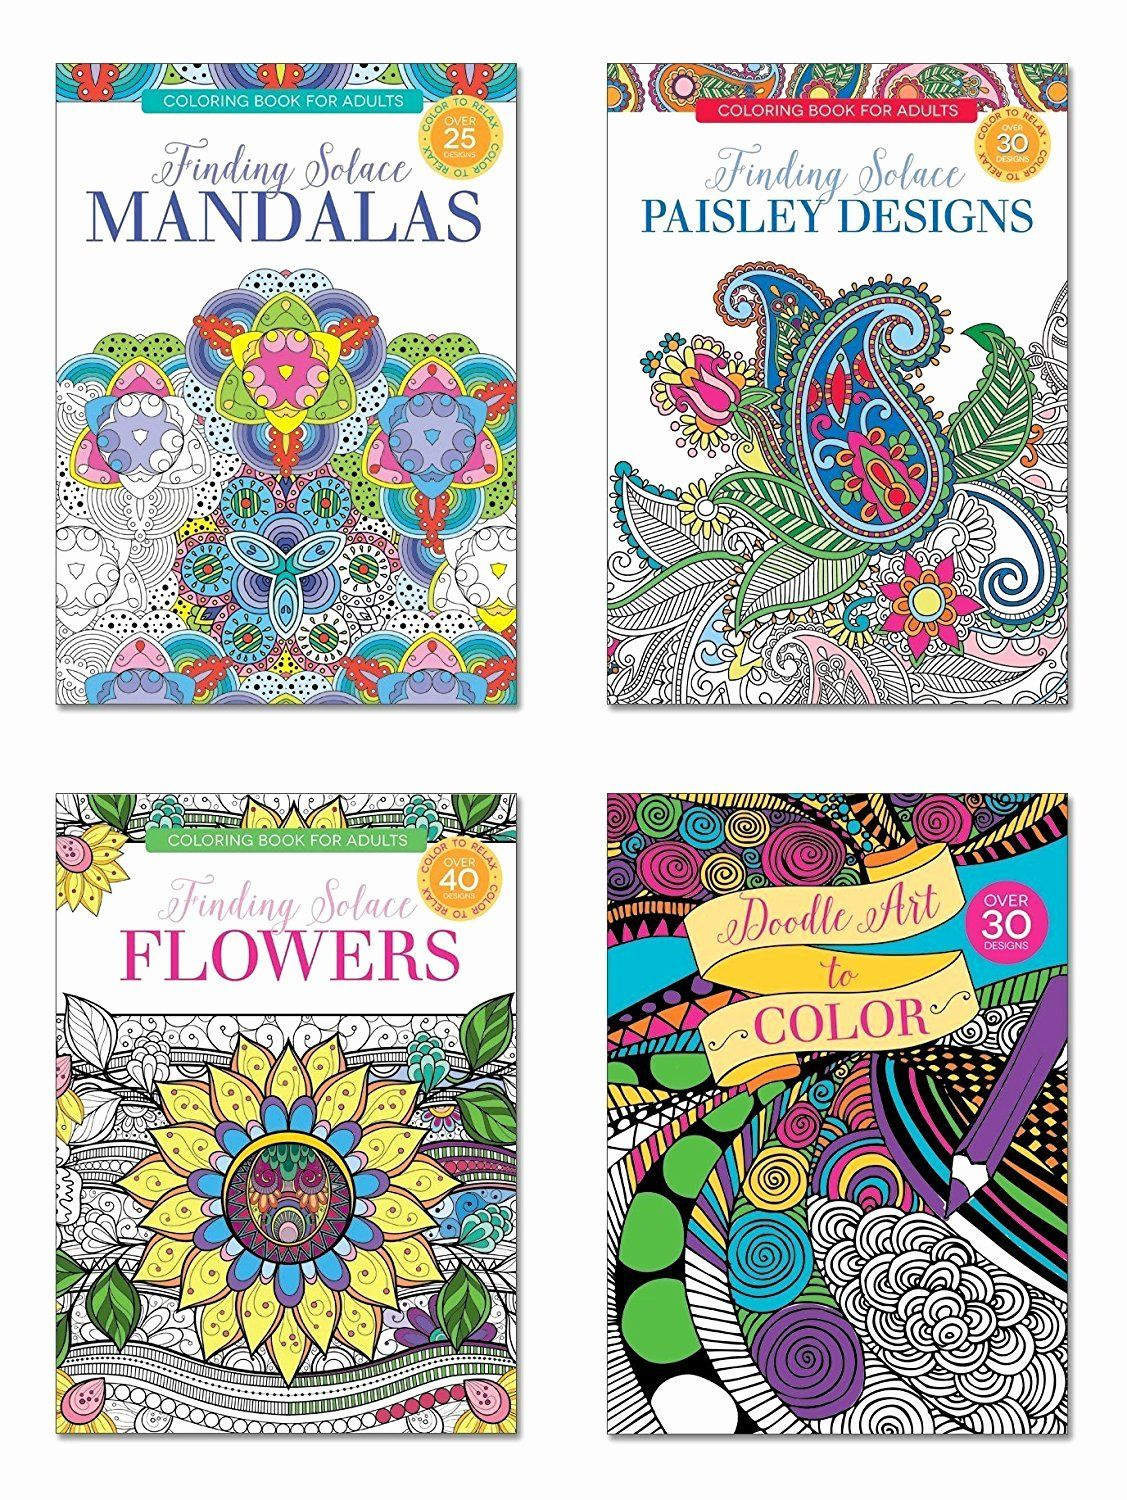 Coloring Book Track List Elegant Coloringok Set Sheets Chance The Rapper Zip Pages To Print Coloring Book Set Mandala Coloring Books Coloring Books